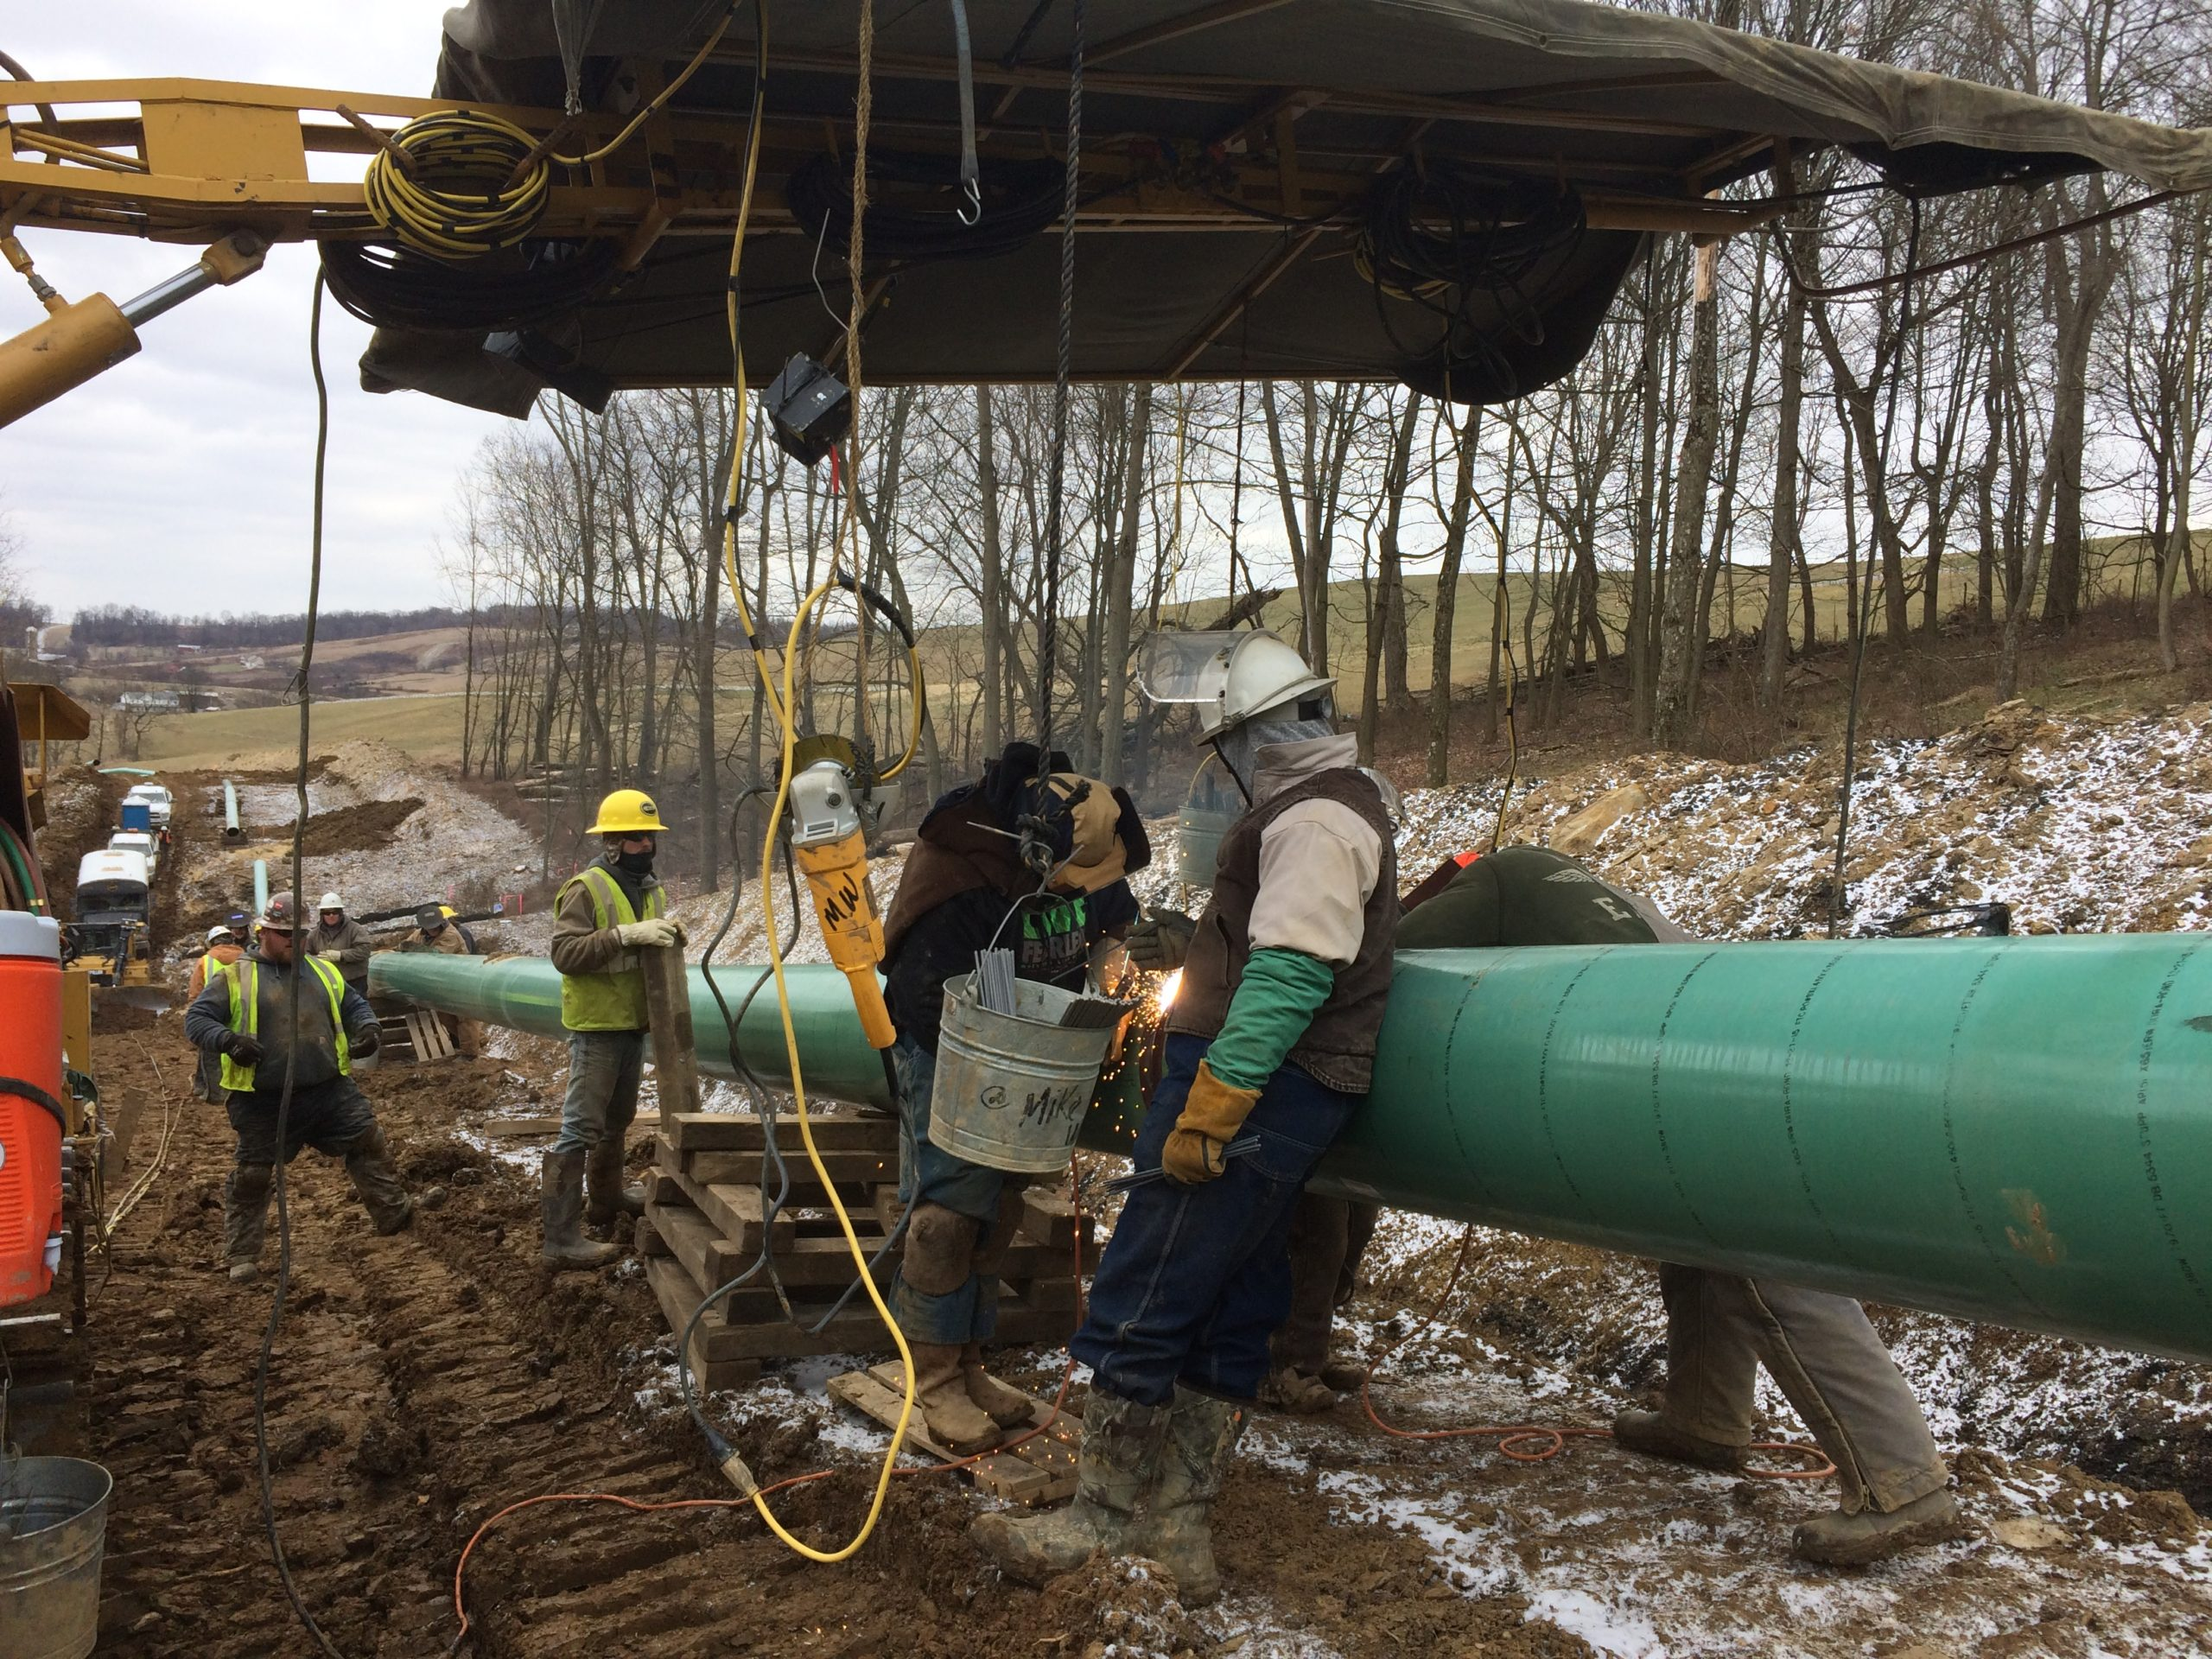 #4 Nearing Completion, Mariner East 2 Pipeline to Safely Deliver the Energy Our Nation Needs